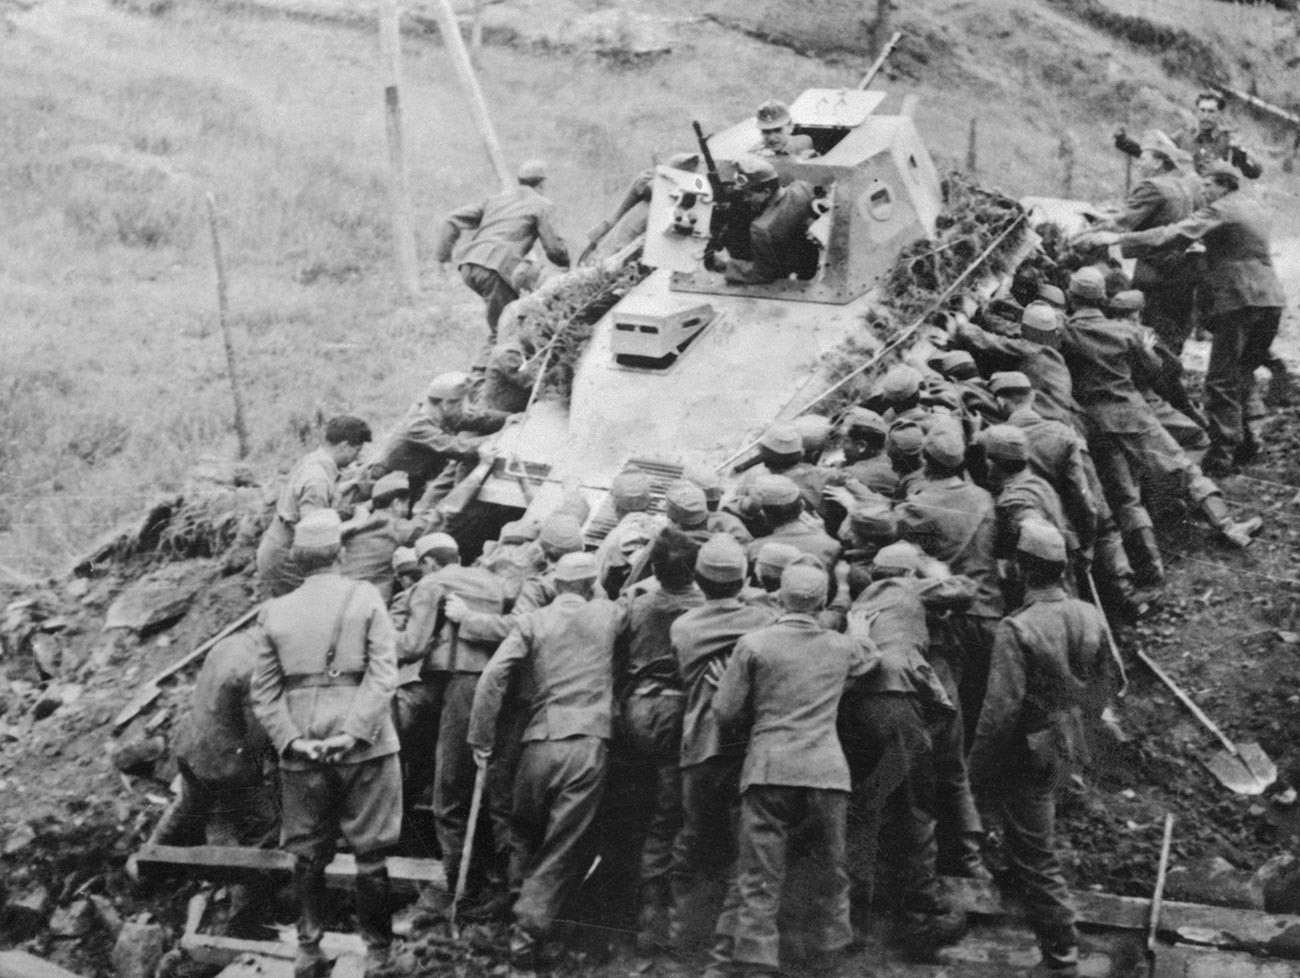 Over 50 Hungarian soldiers are putting their shoulders to the tractor wheels in an effort to recover this disabled Soviet tank.